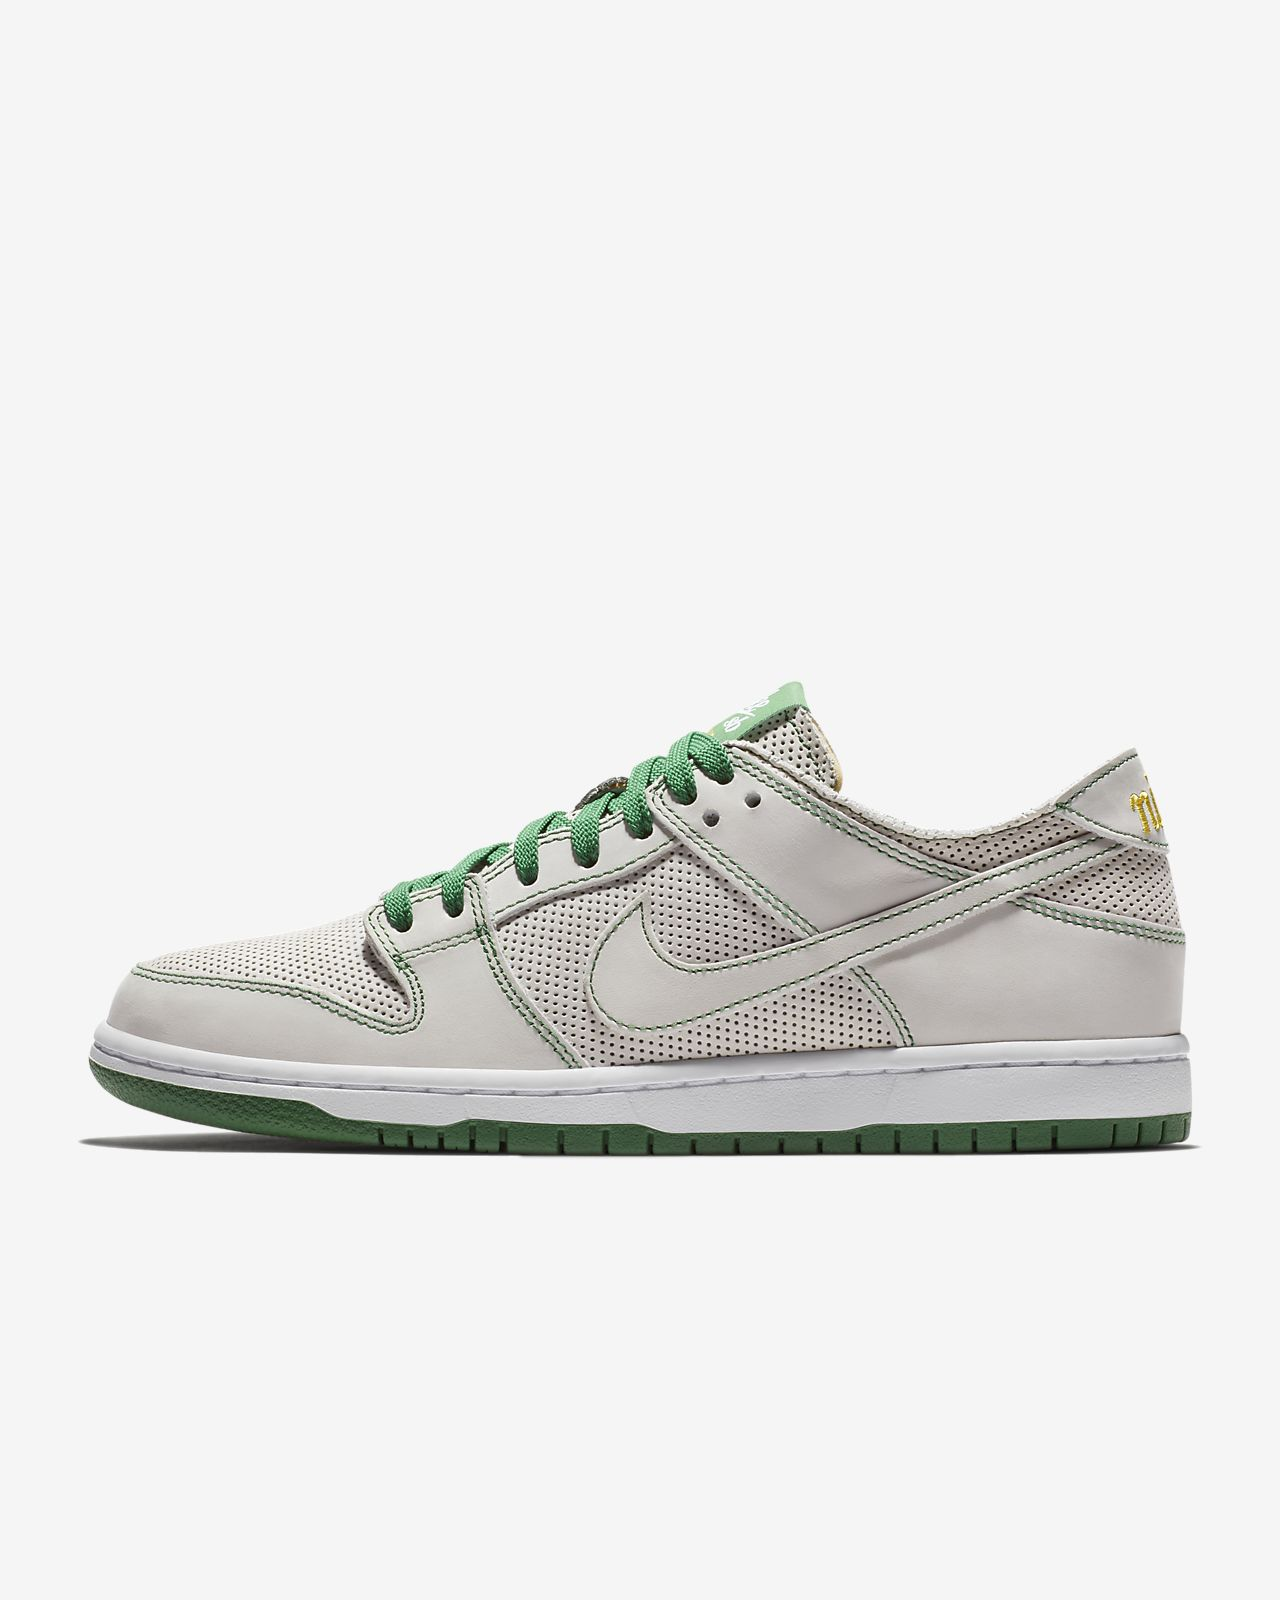 meet 42f22 857c7 ... low cost nike sb zoom dunk low pro deconstructed qs x ishod wair mens  skateboarding shoe